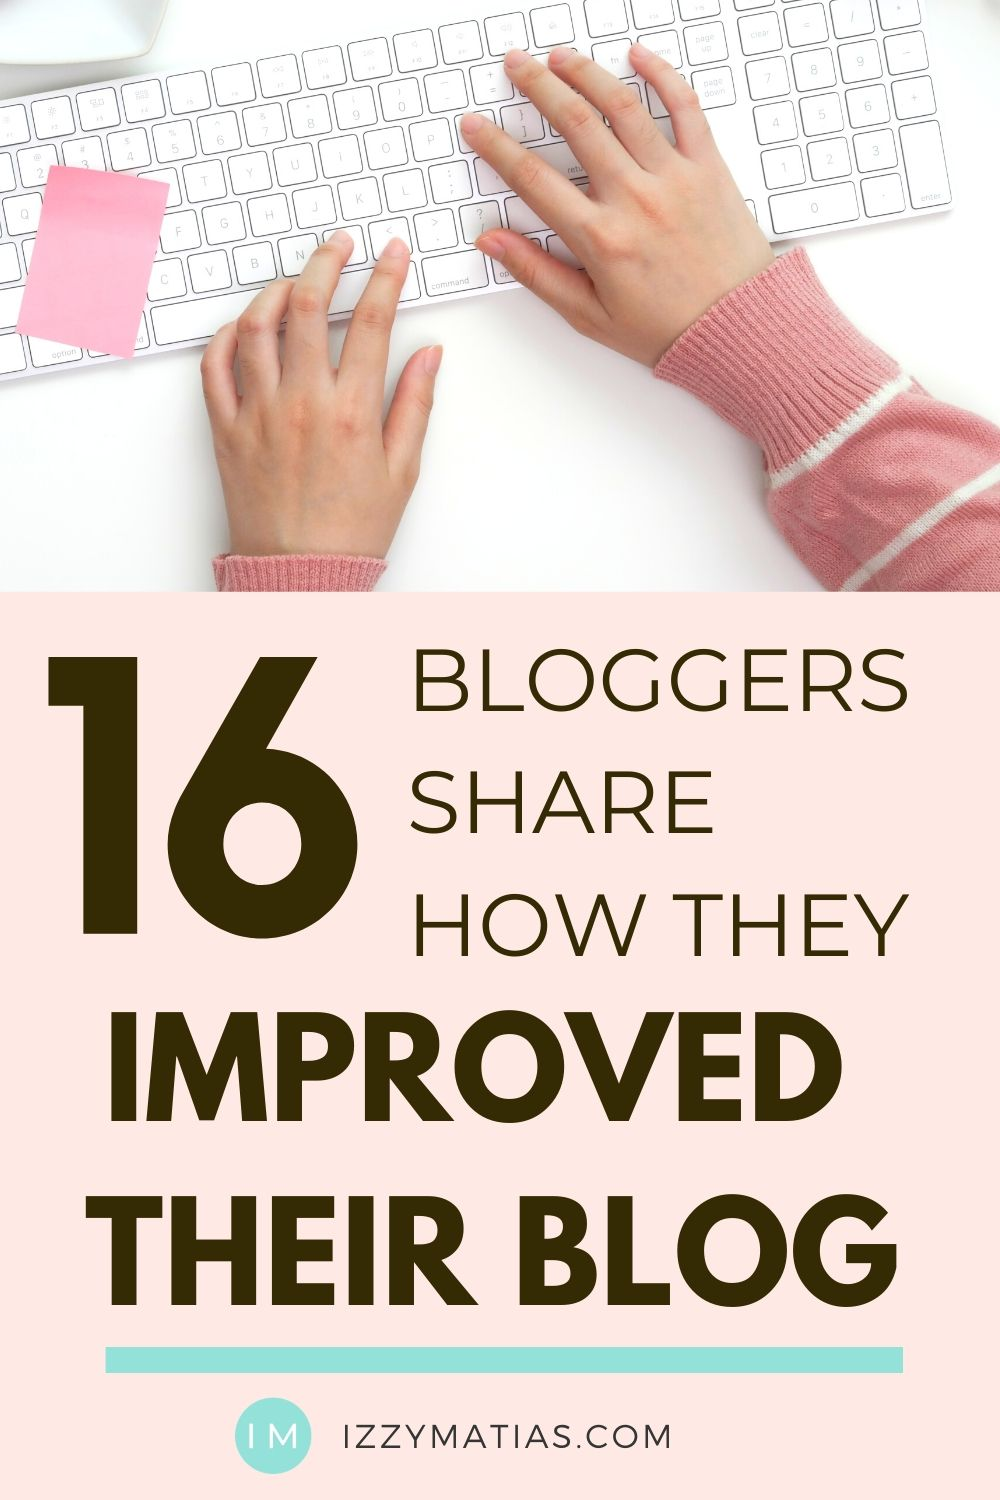 Blogging Advice:  16 bloggers share how they improved their blog. Click the post to find out what blogging advice they give to new bloggers to grow a blog.  #blogging #bloggingtips #bloggingadvice #blog